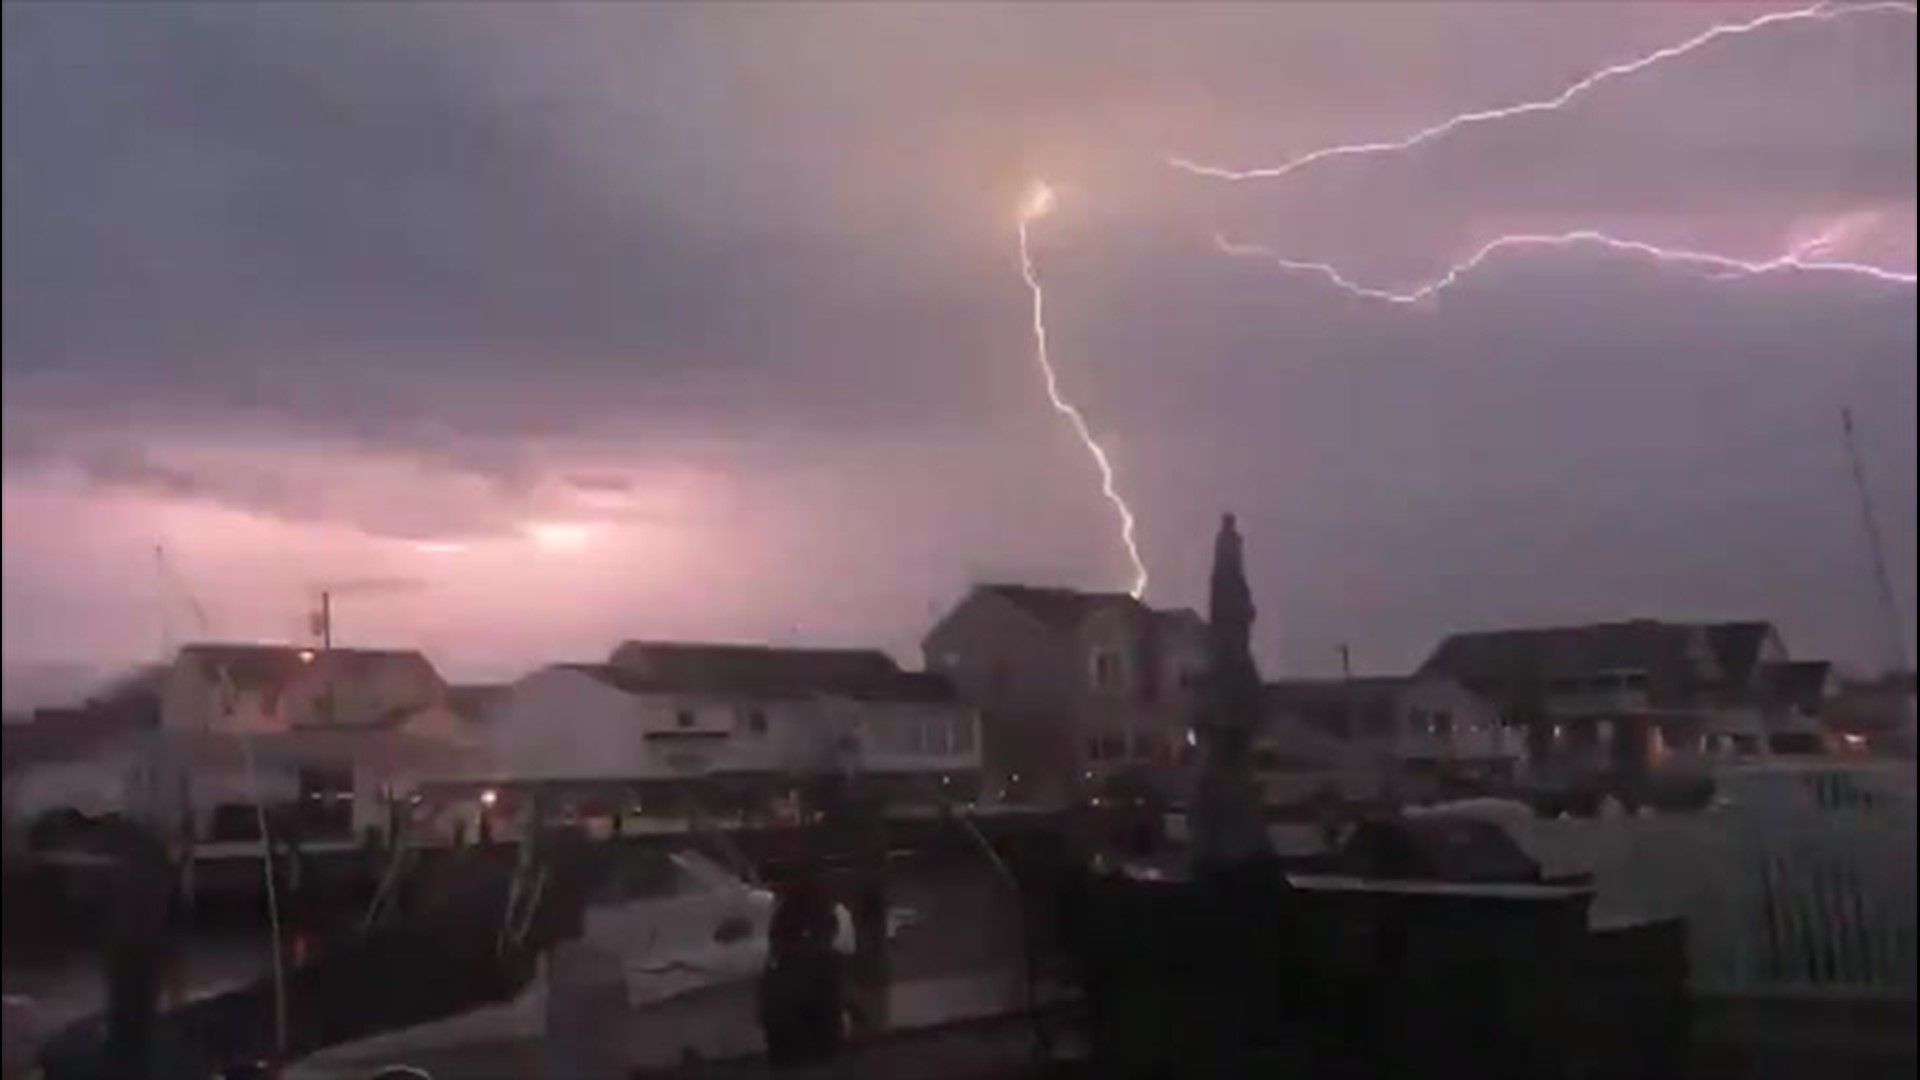 Impressive lightning lights up the sky | localmemphis.com